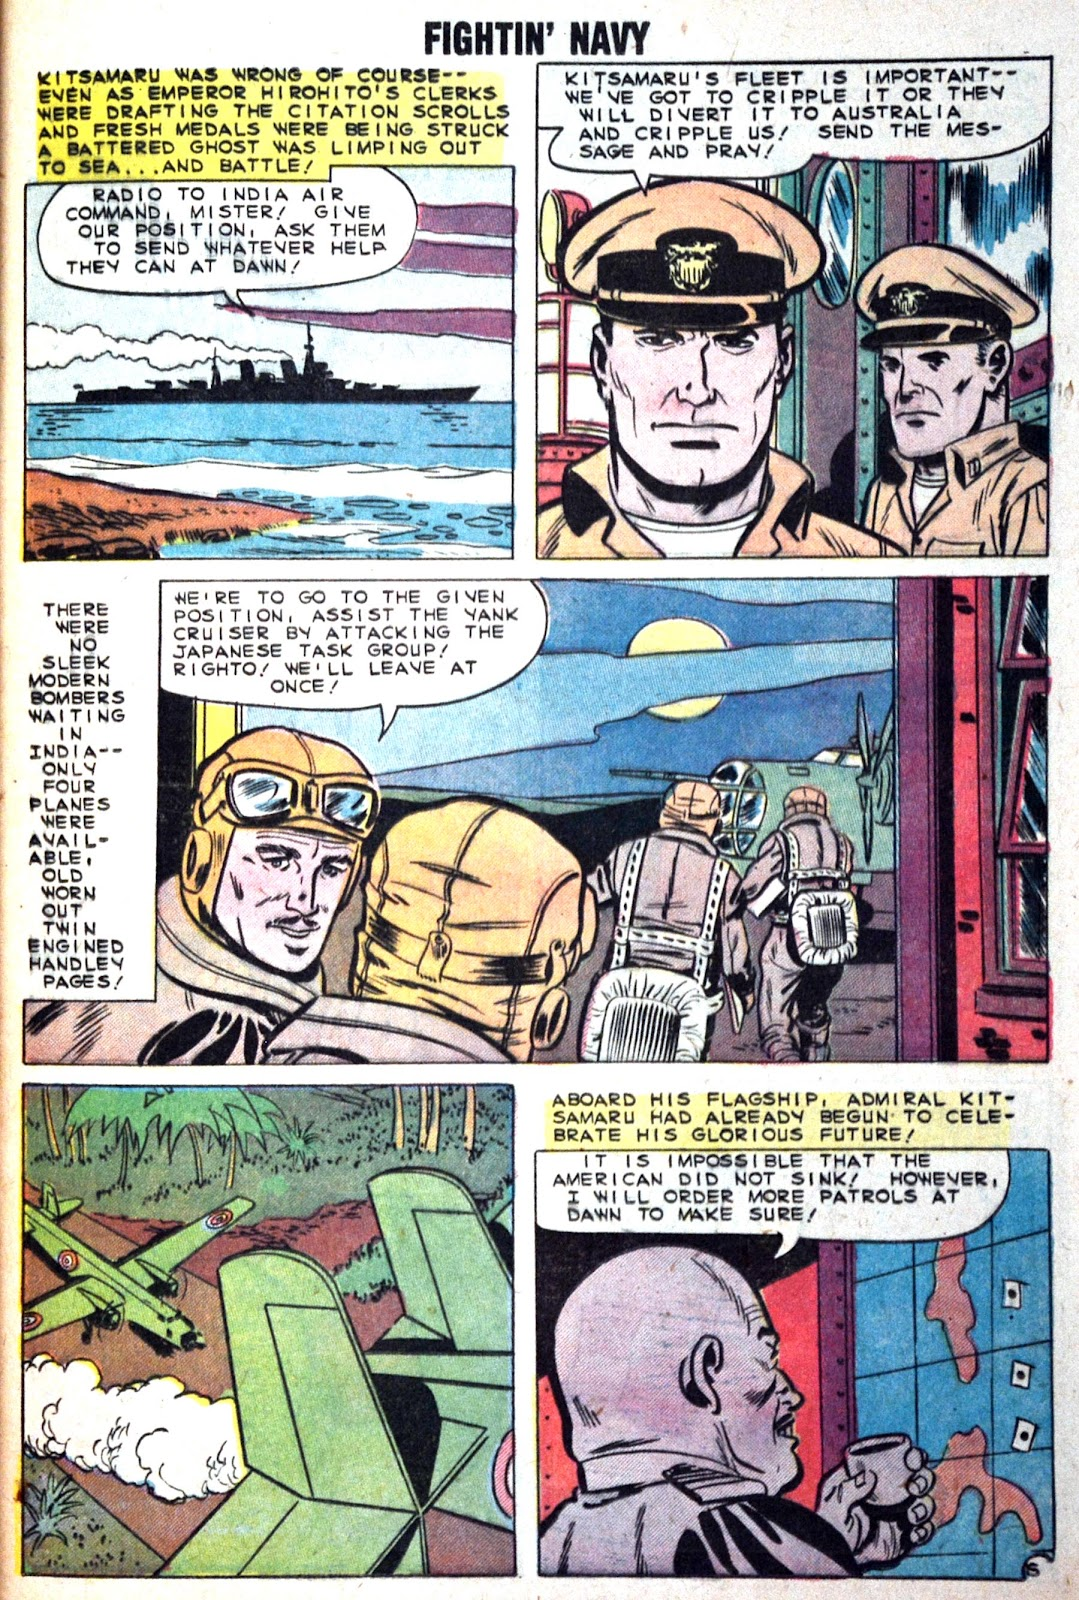 Read online Fightin' Navy comic -  Issue #89 - 25